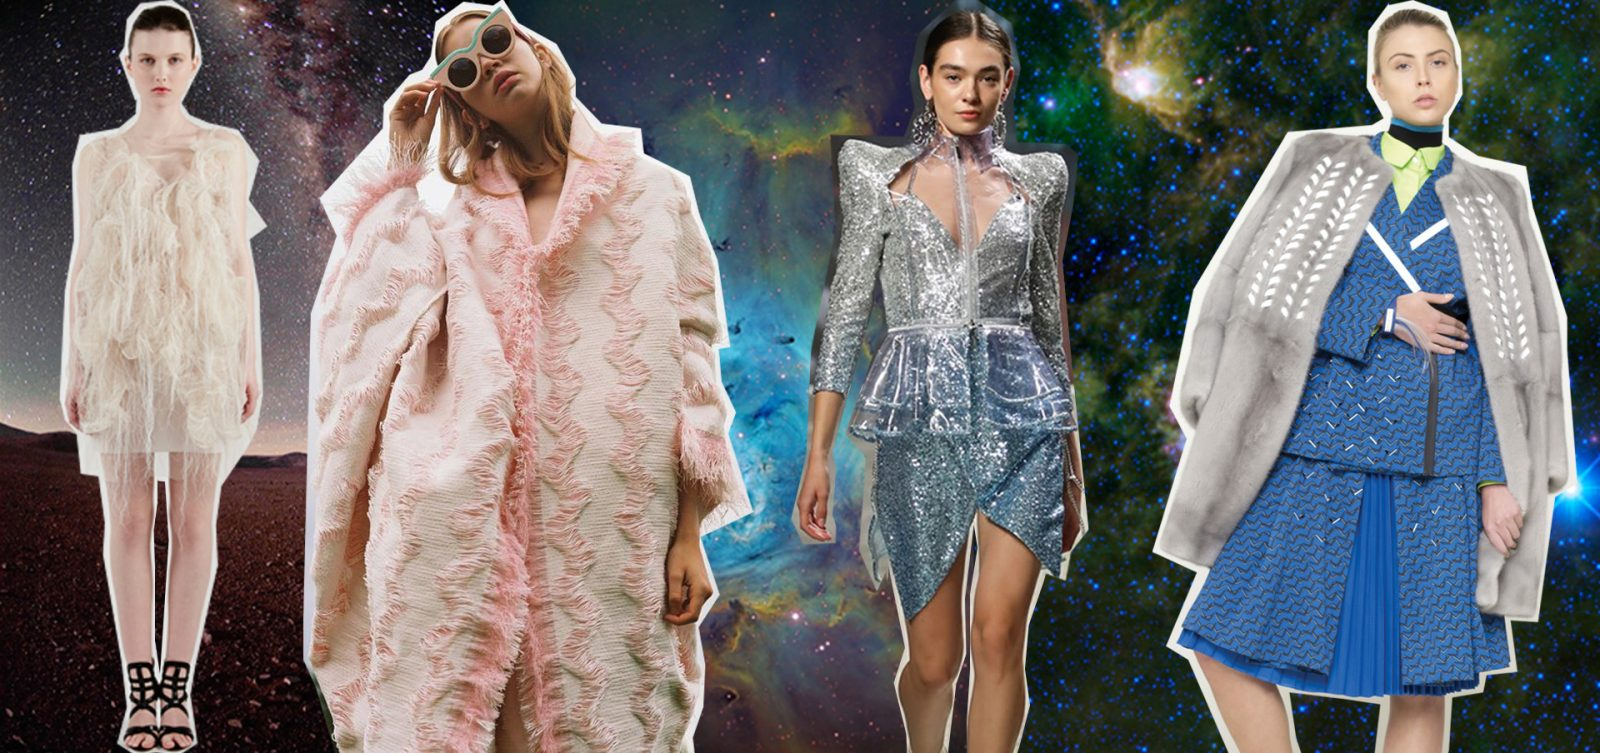 10 Tfp S Best Articles About Avant Garde And Emerging Fashion In 2015 The Fashion Propellant